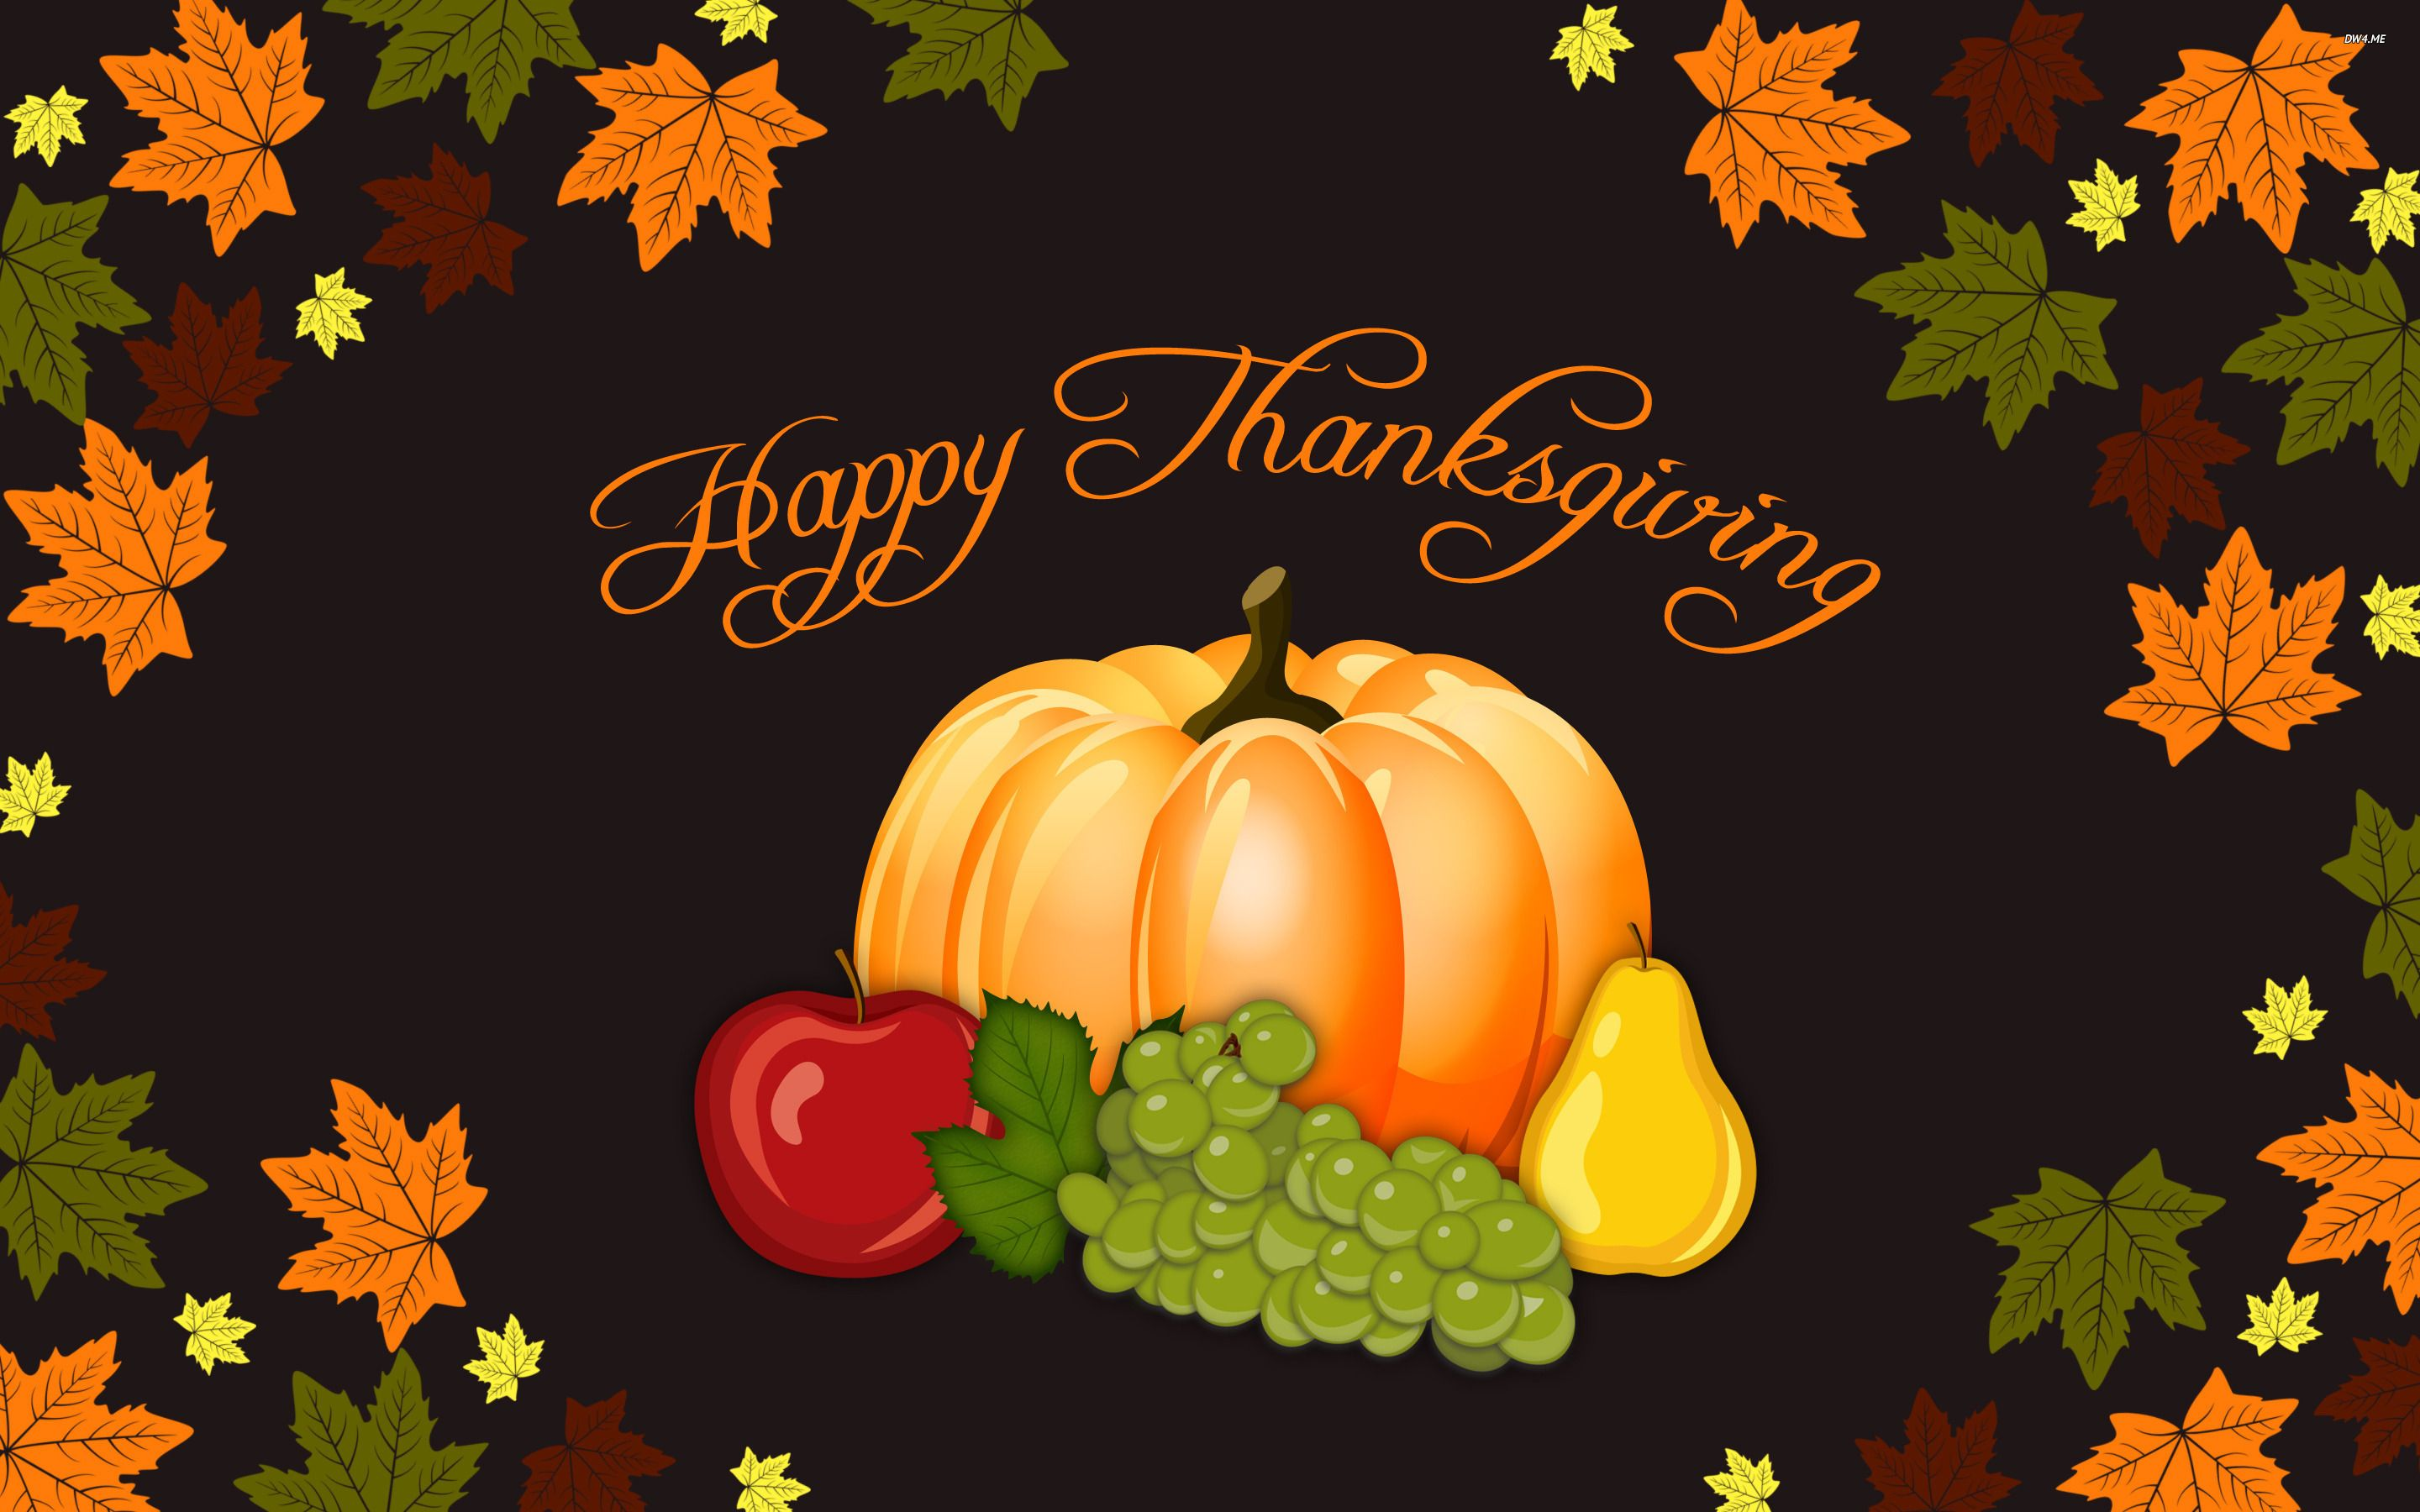 Thanksgiving Wallpapers   Top Thanksgiving Backgrounds 2880x1800